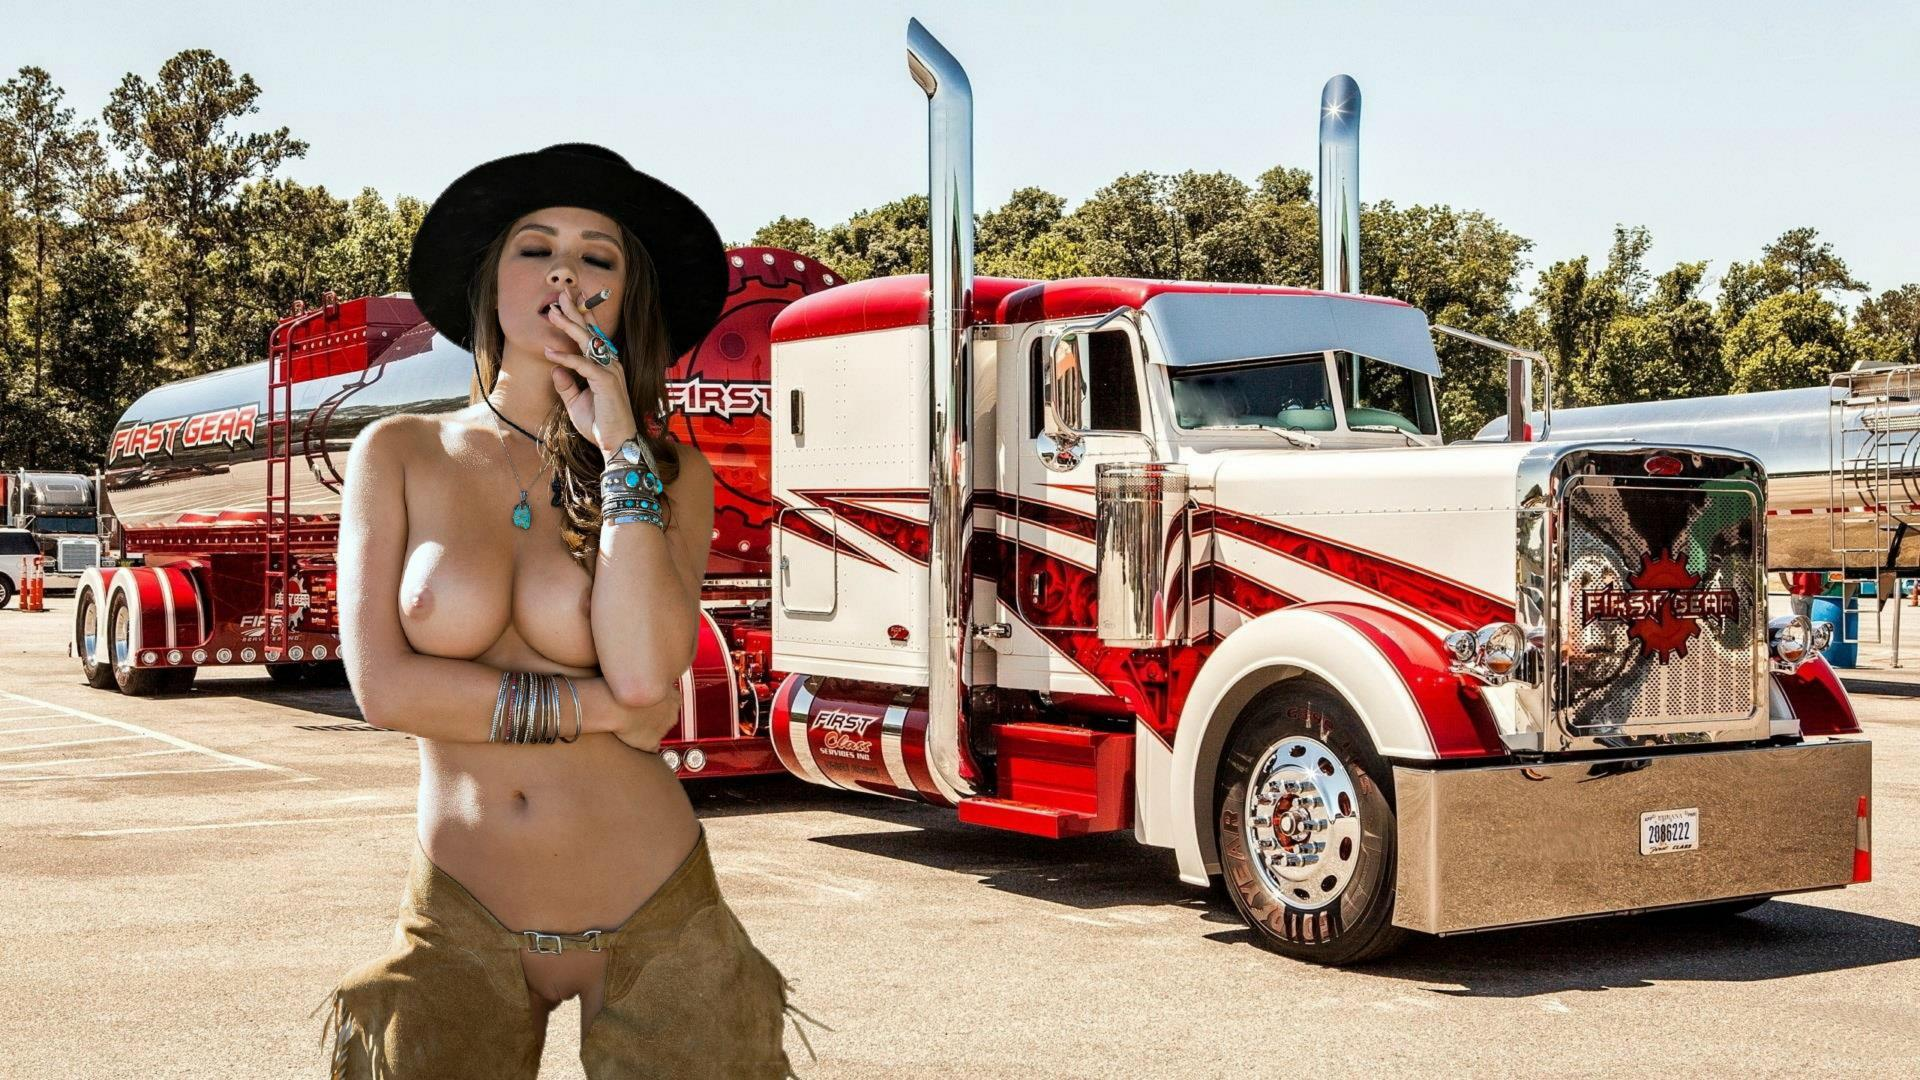 Think, that Naked big rig girls apologise, but